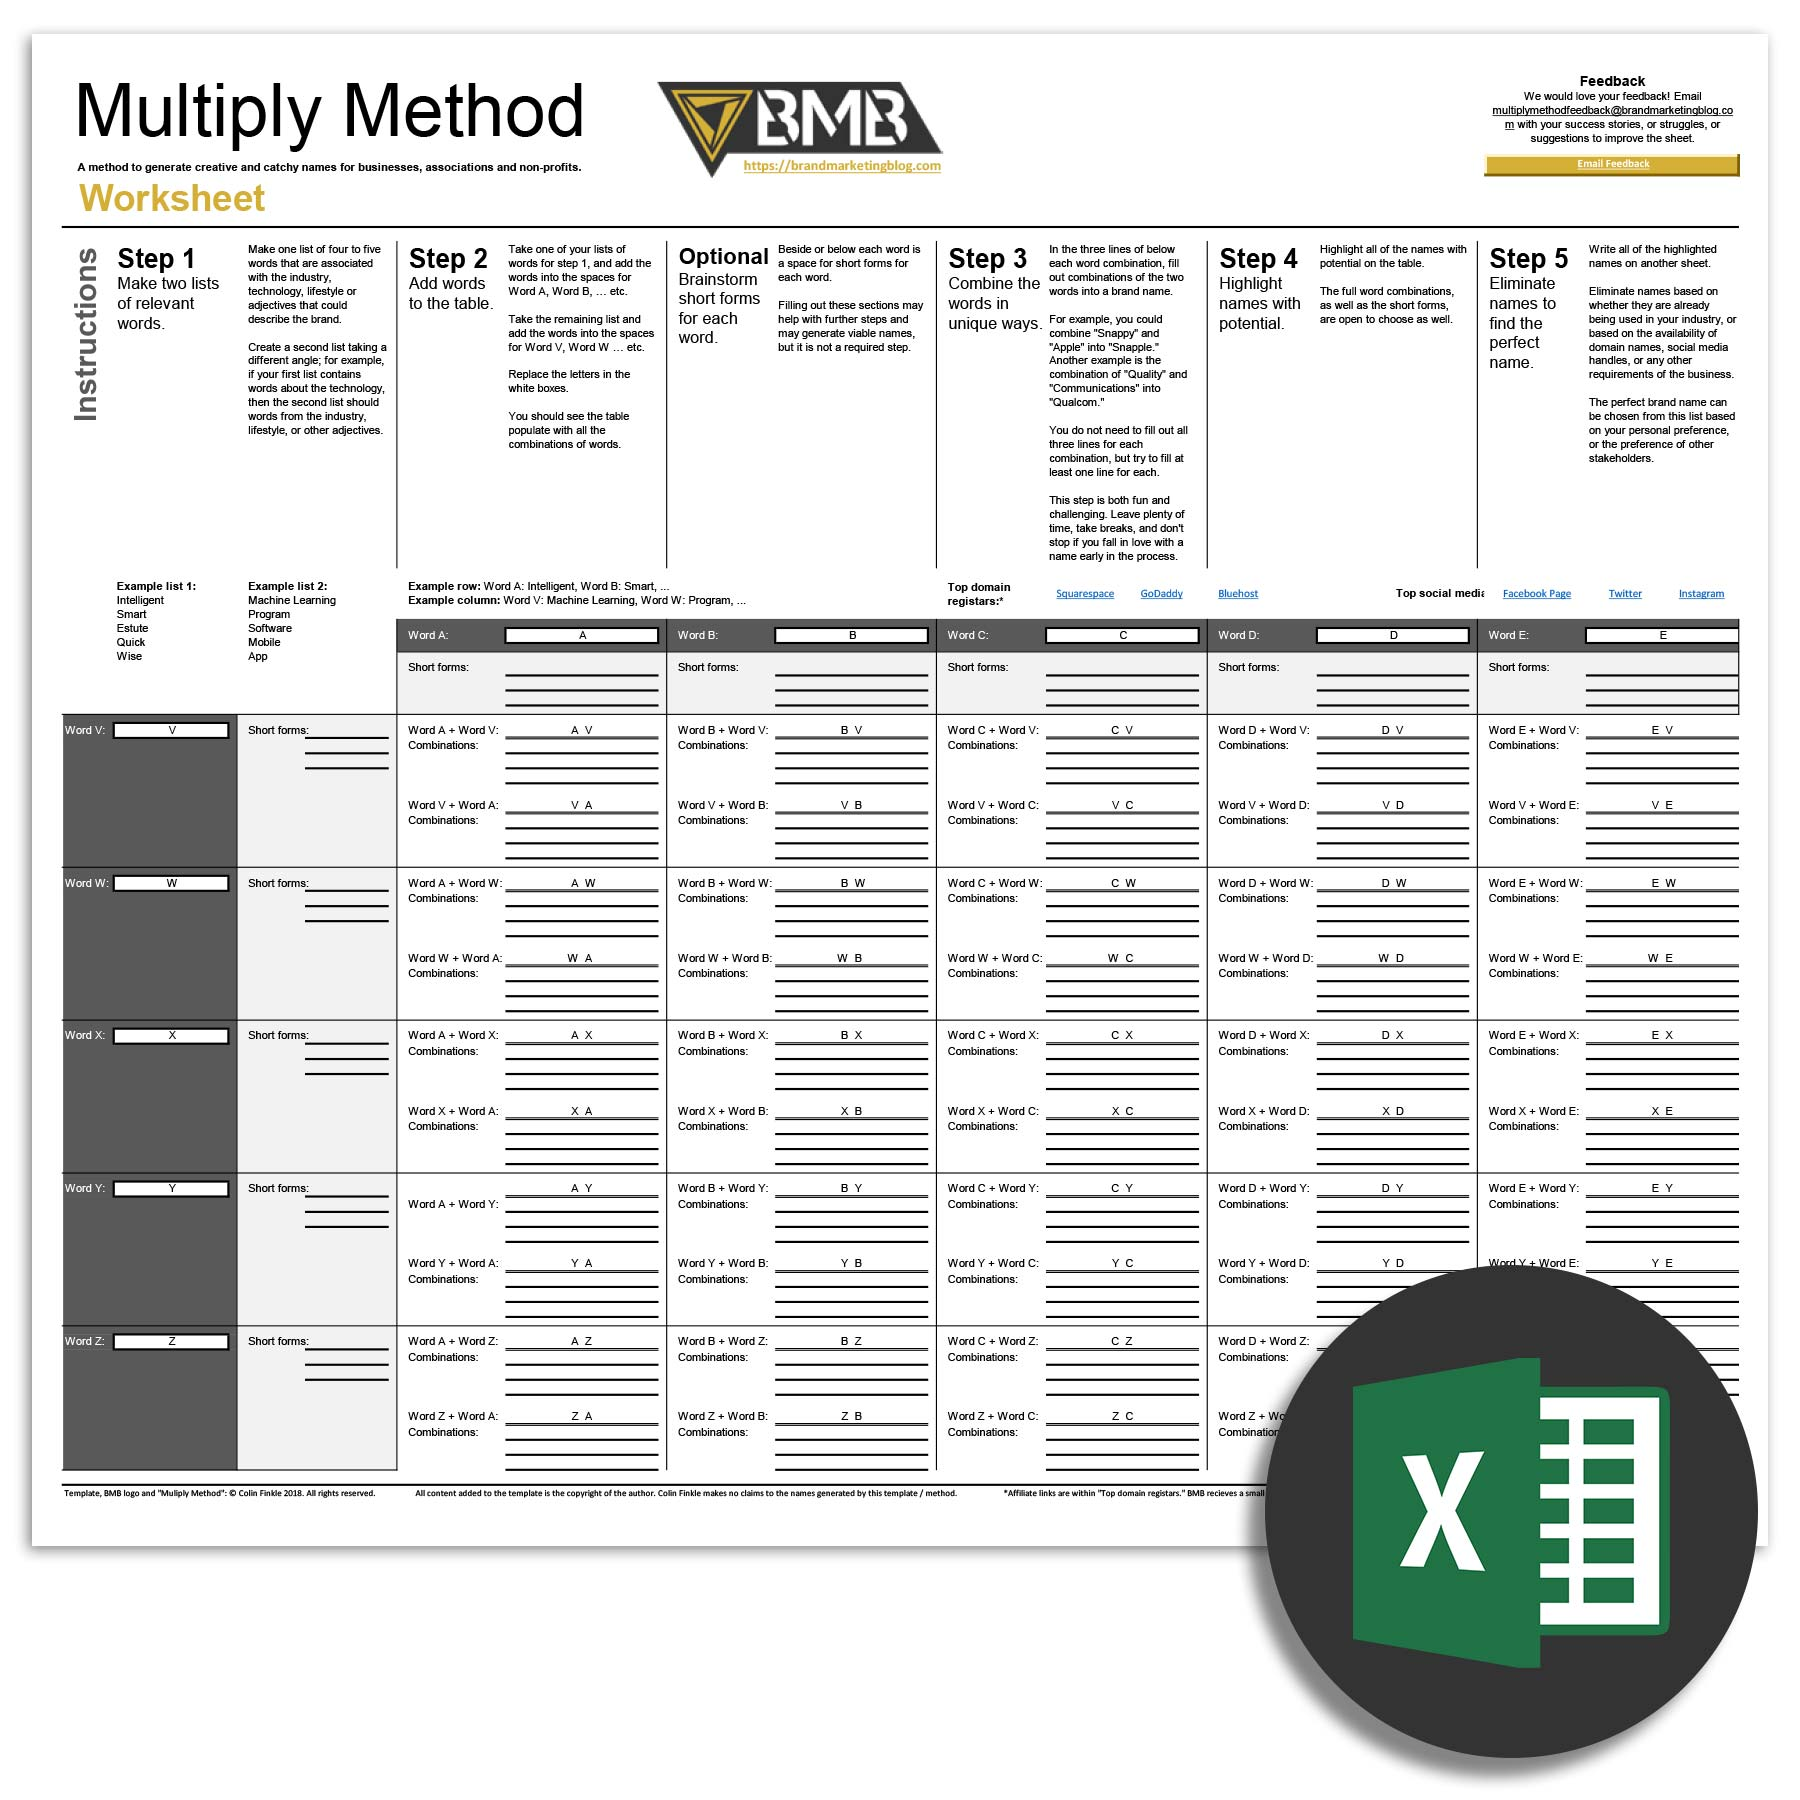 Multiply method spreadsheet excel bmb multiply method excel spreadsheet excel icon creative business name generator wajeb Image collections